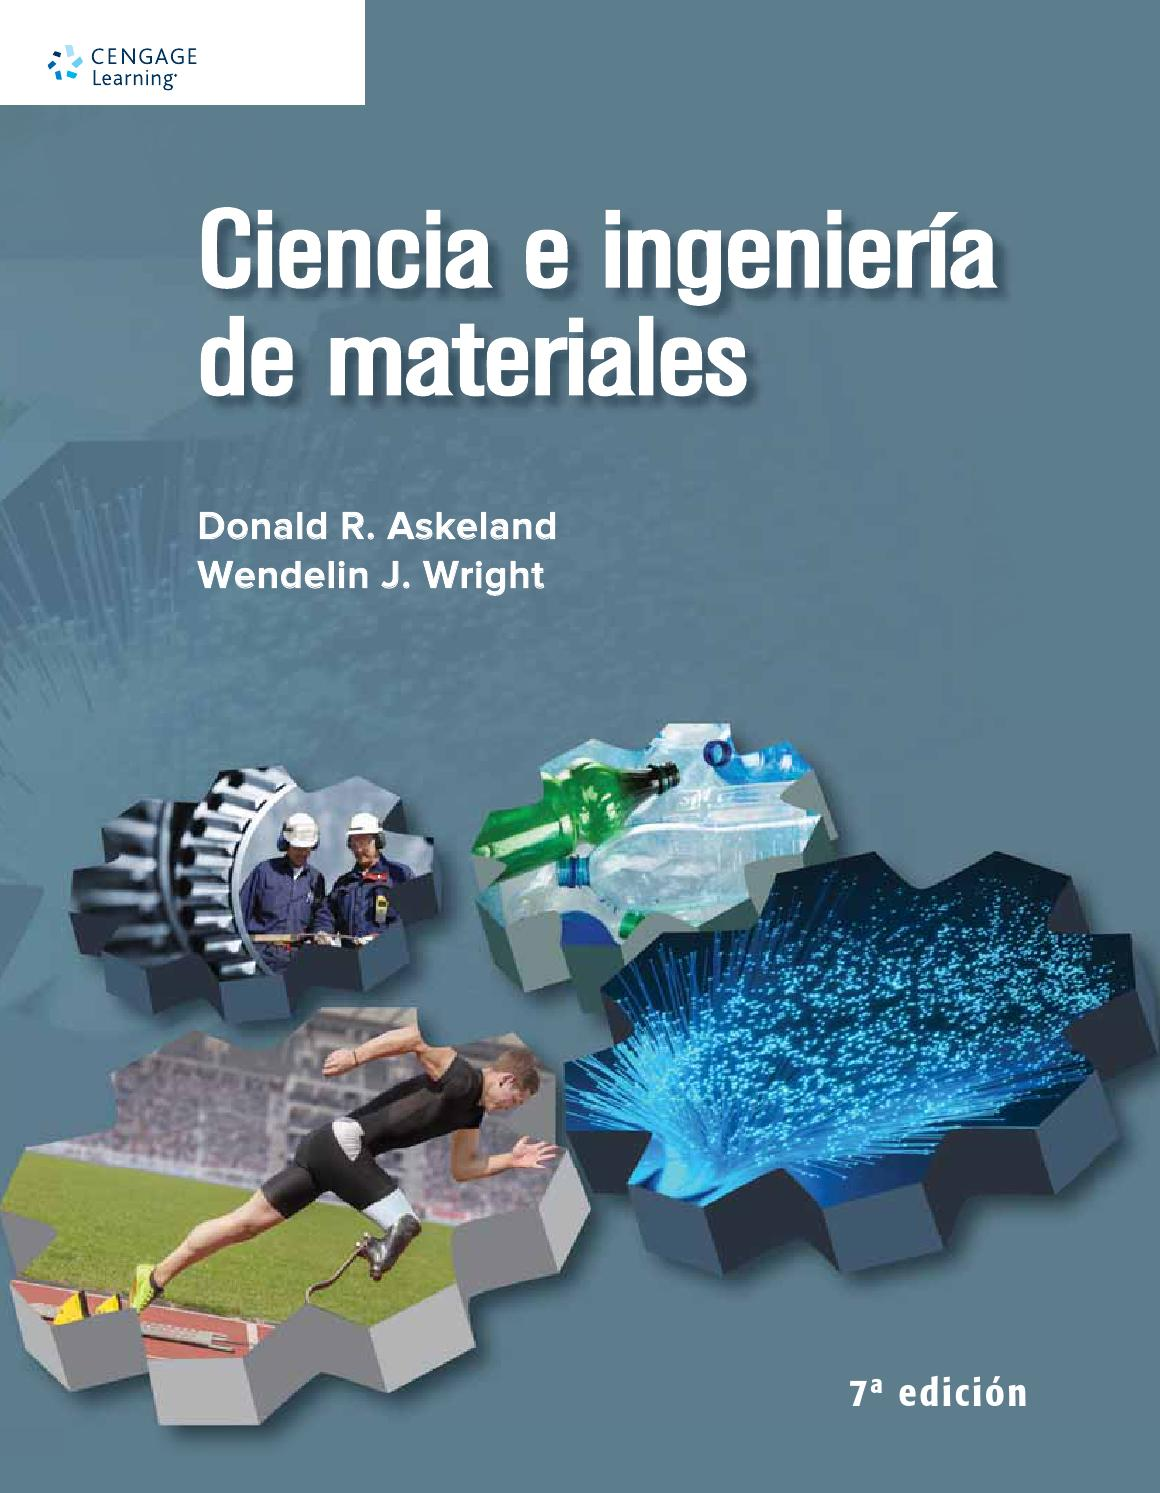 Ciencia e ingenier a de materiales 7a ed donald r askeland y wendelin j wright by cengage learning editores issuu